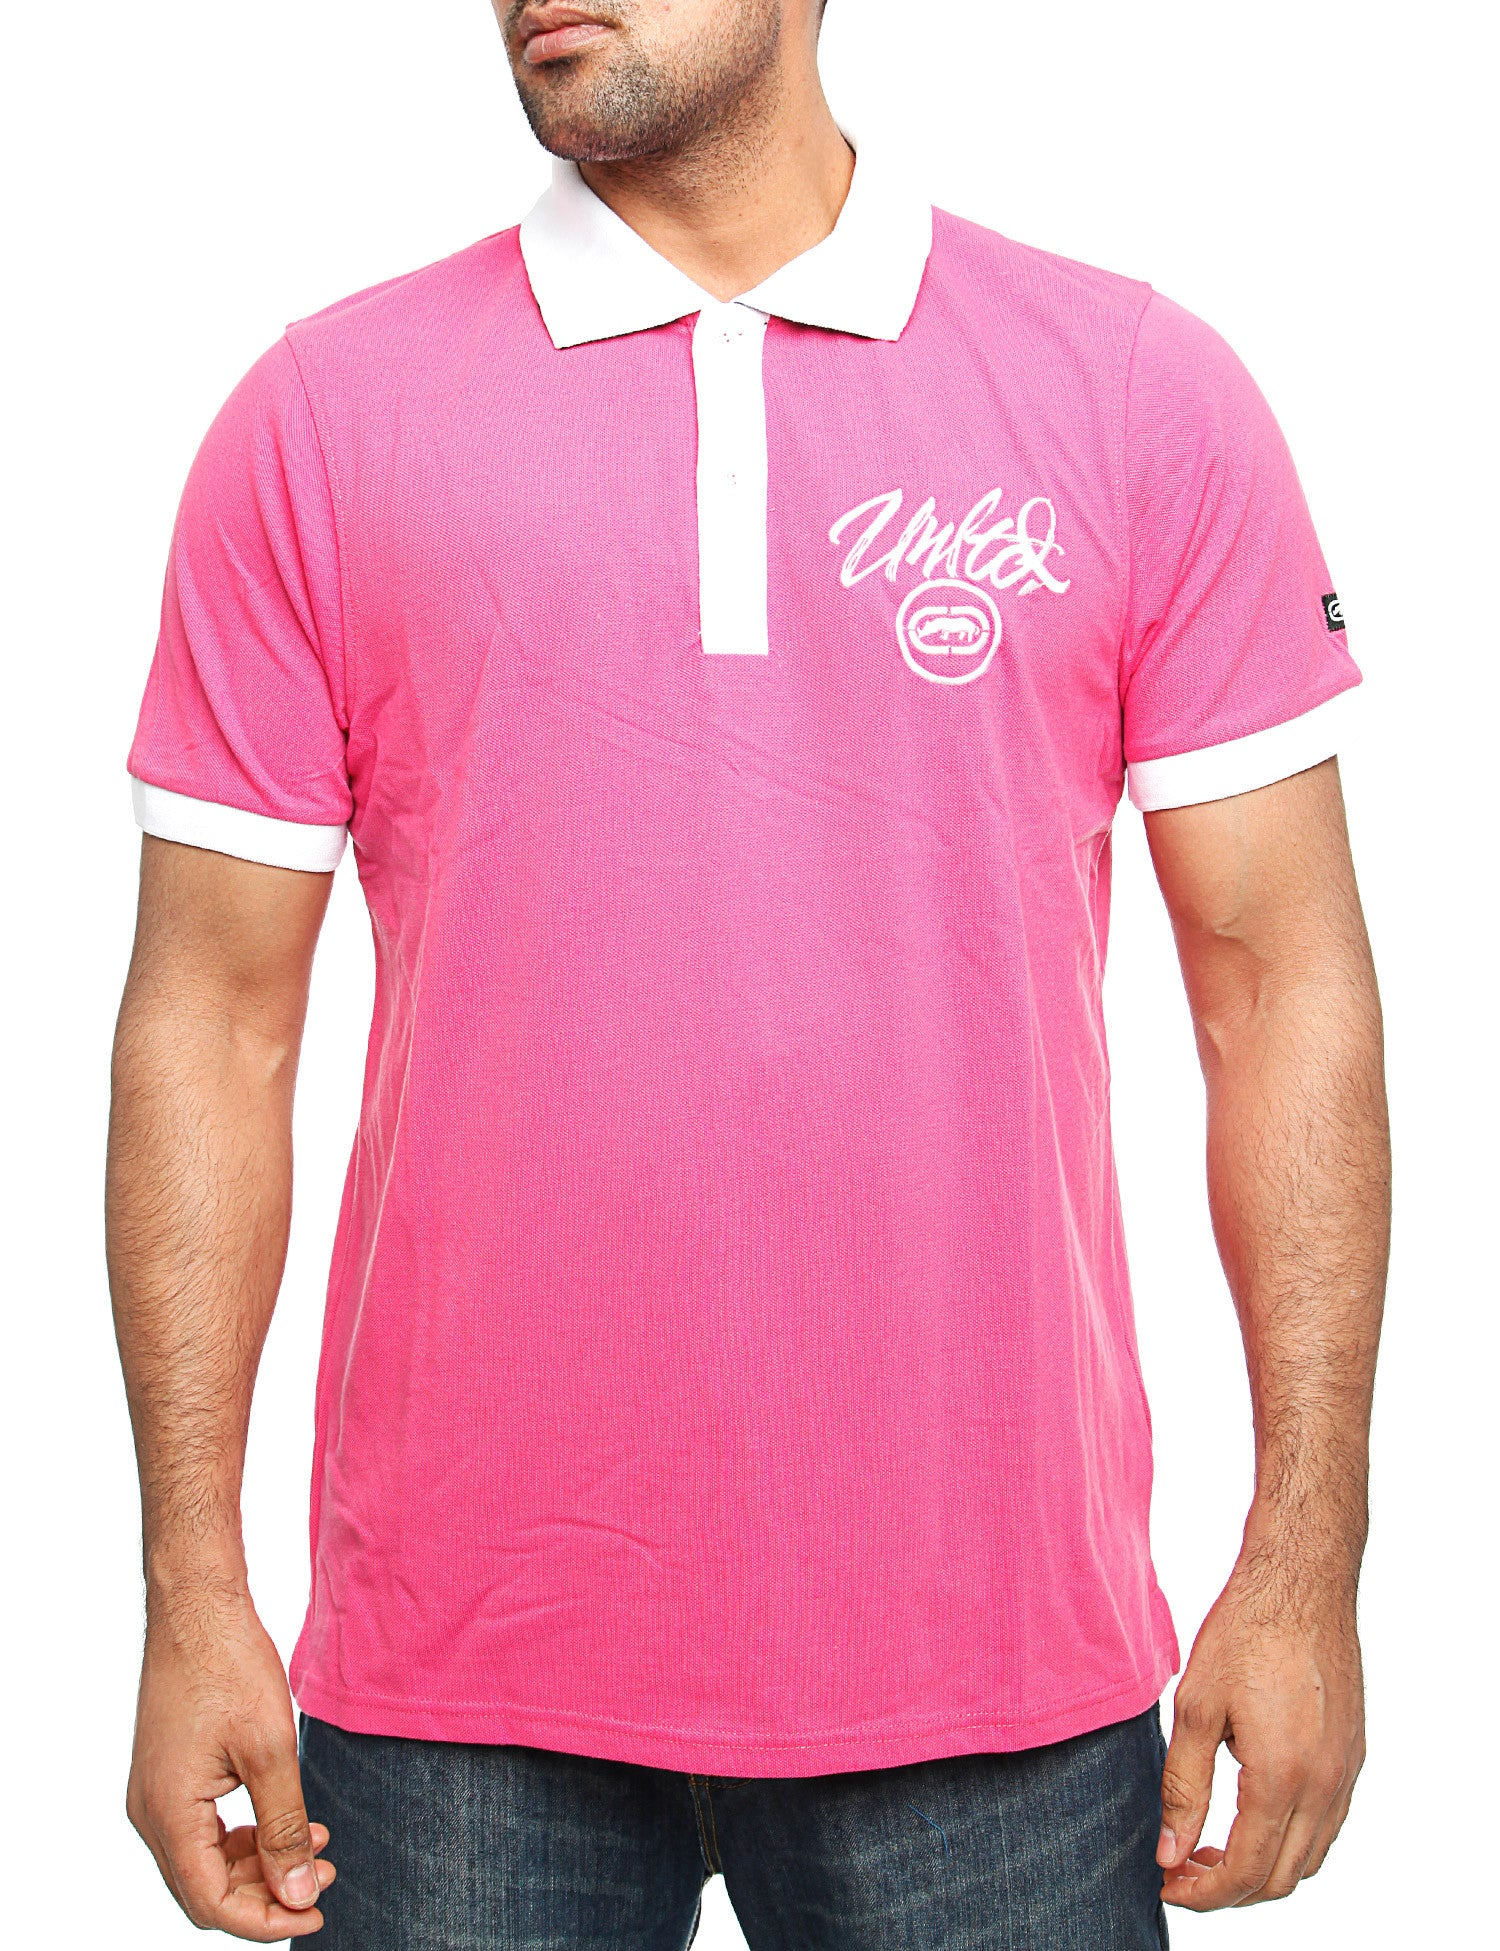 Image of Ecko Comet Polo Shirt Pink